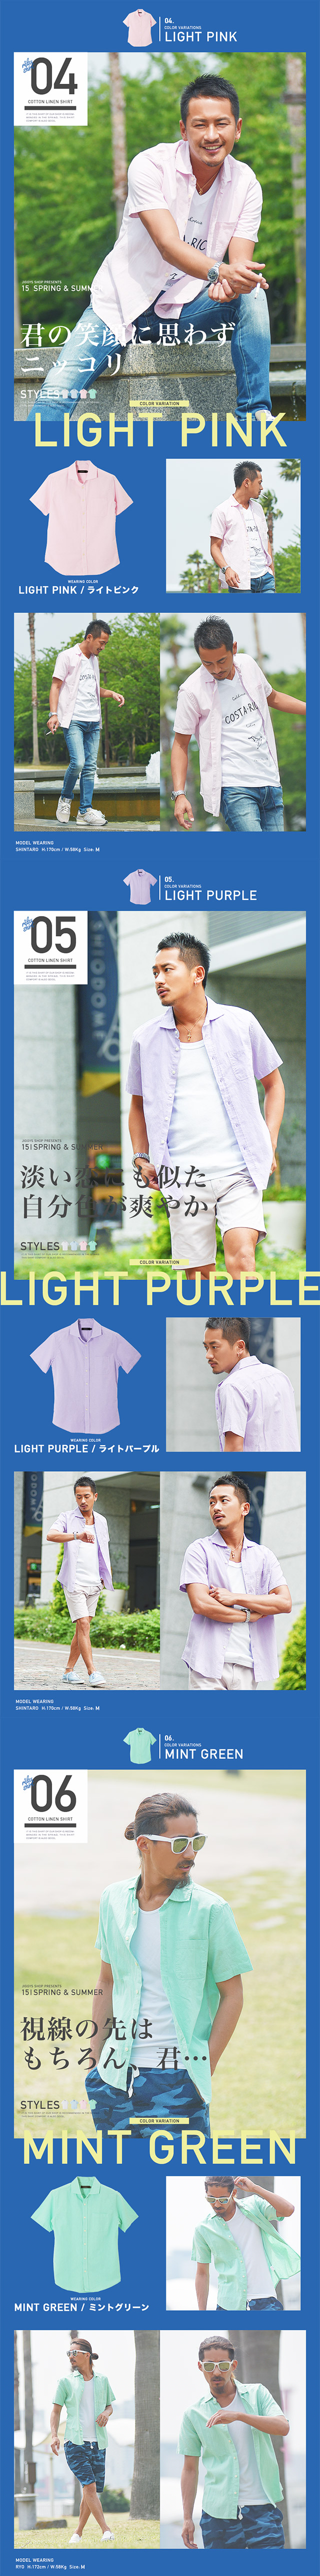 ◆roshell Cotton/hemp wide spread short sleeves shirt◆linen shirt/ men's shirt/ short sleeves/ casual shirt/ cool/ cotton/ hemp/ men's fashion/ plain color/ spring/ summer/ white